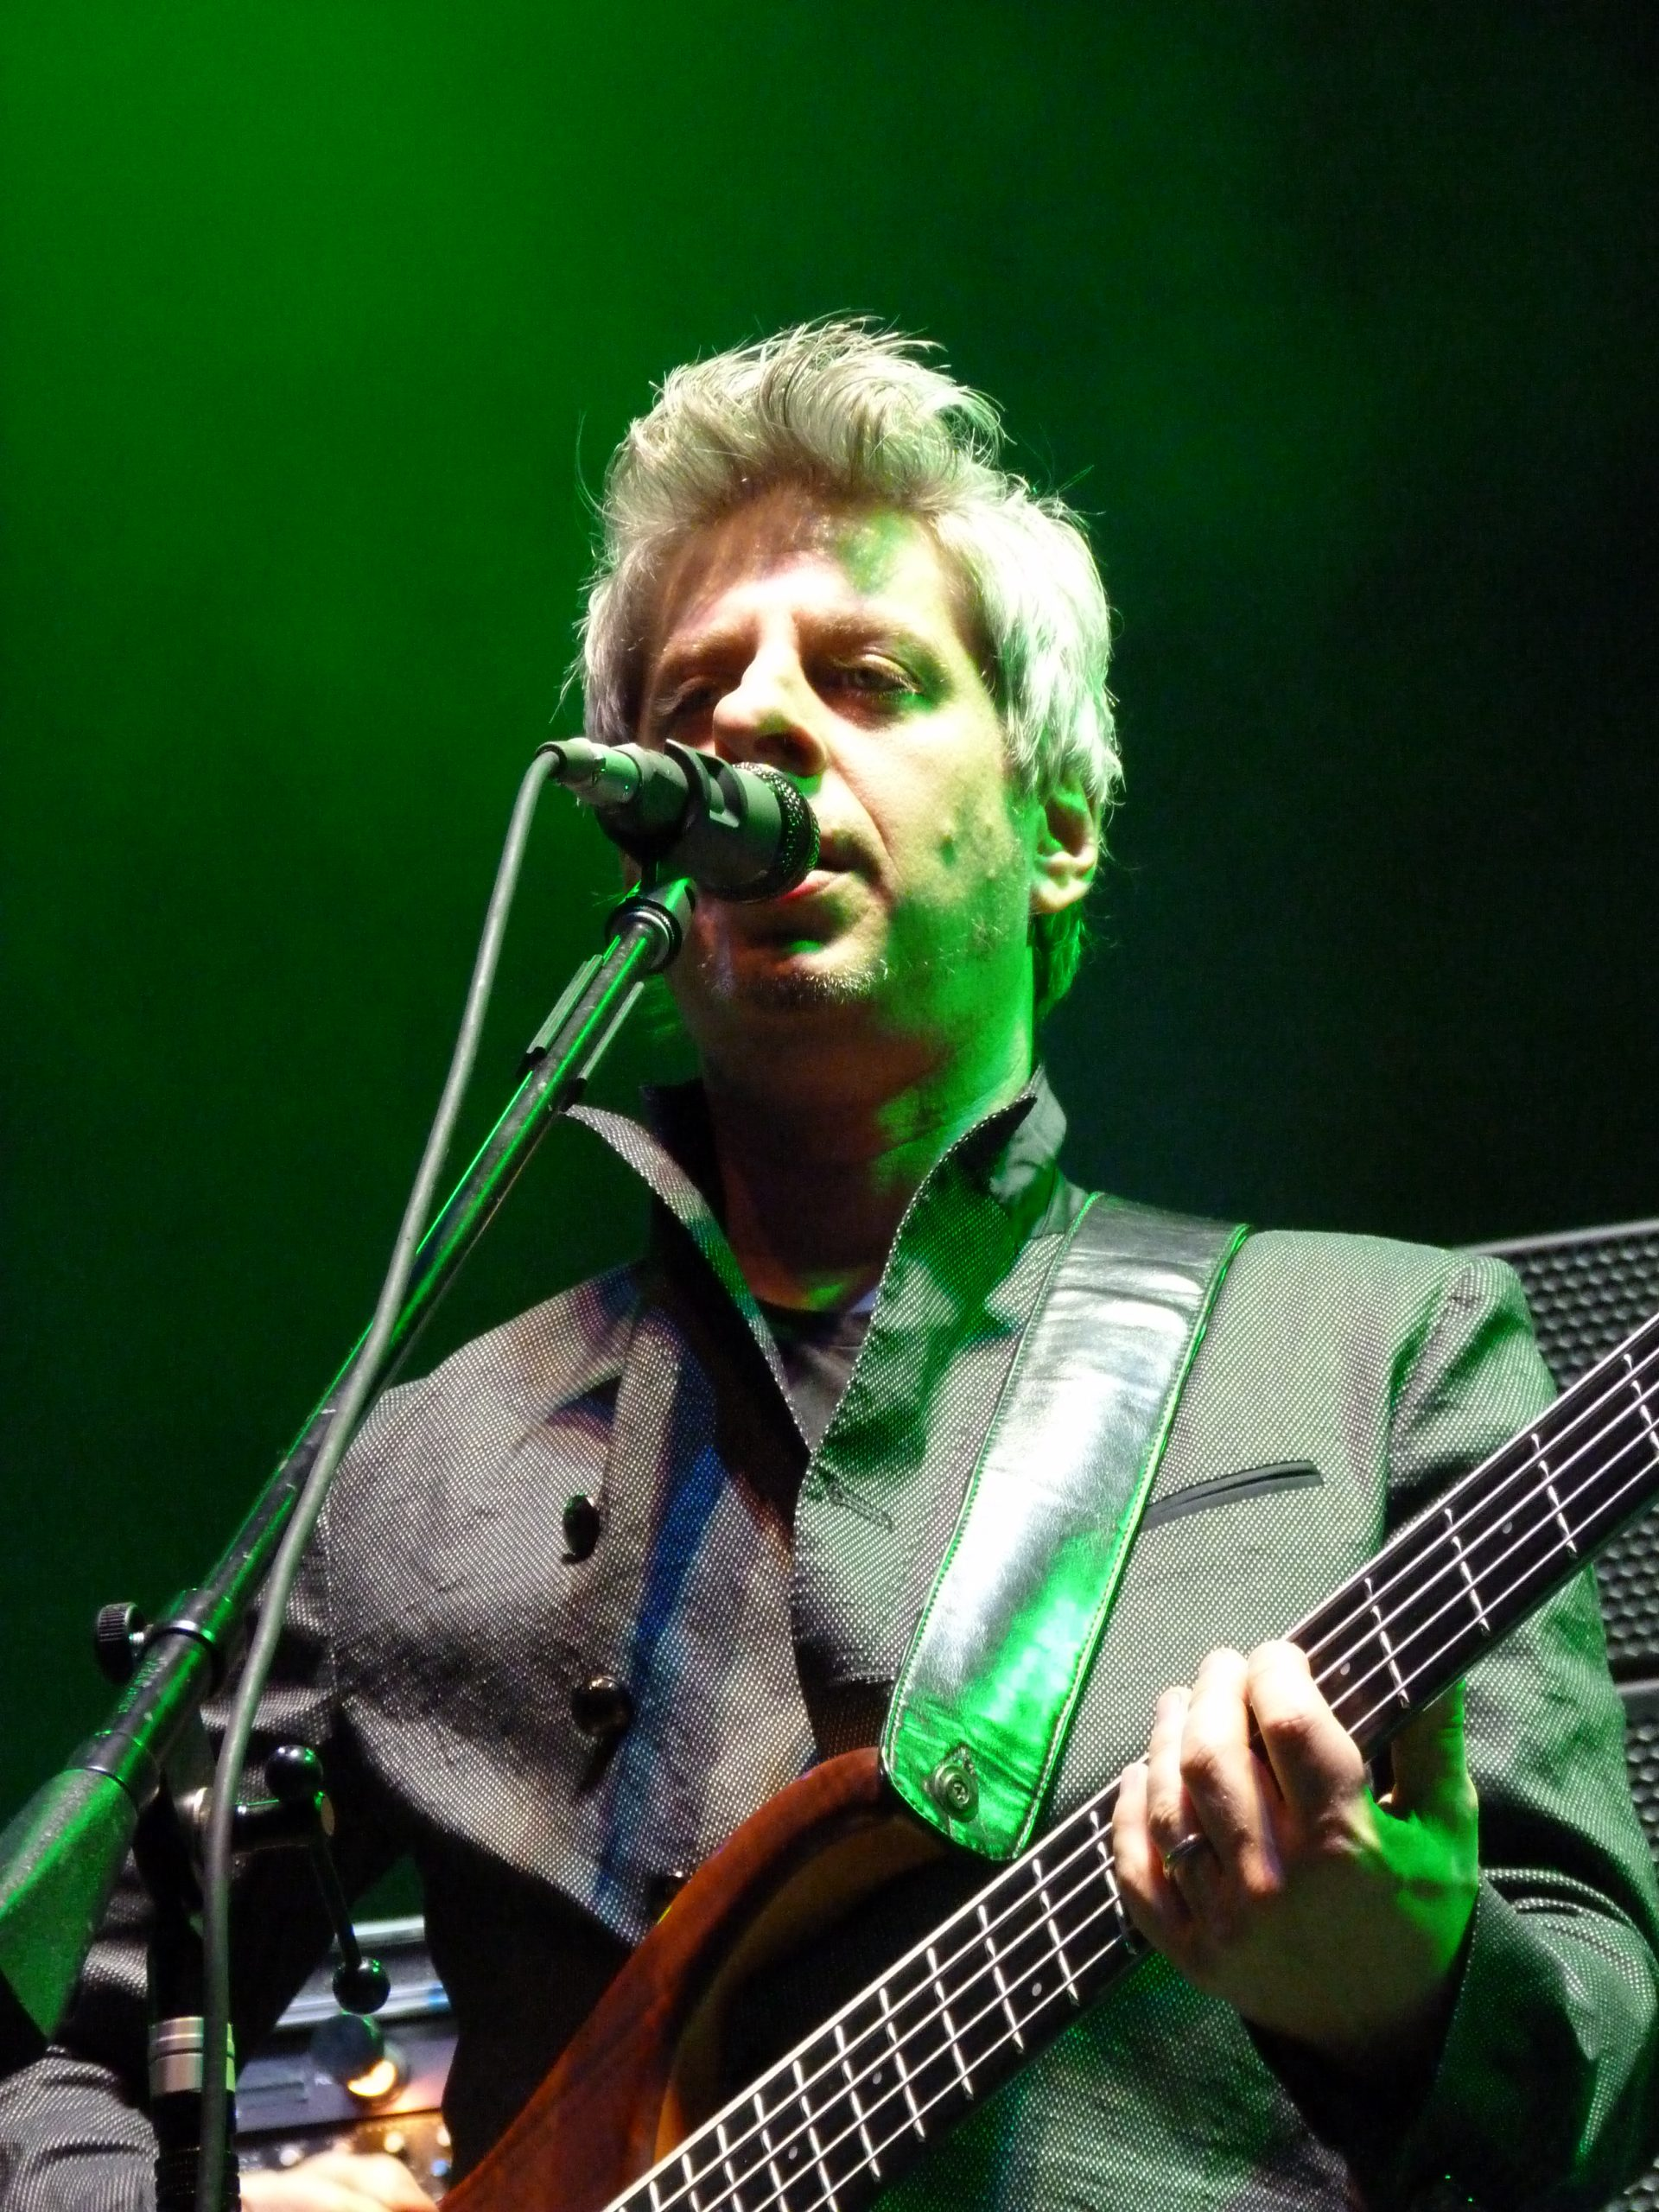 Mike Gordon performs Oct. 31, 2013 at Boardwalk Hall in Atlantic City, NJ (photo credit: Shaun Smith)